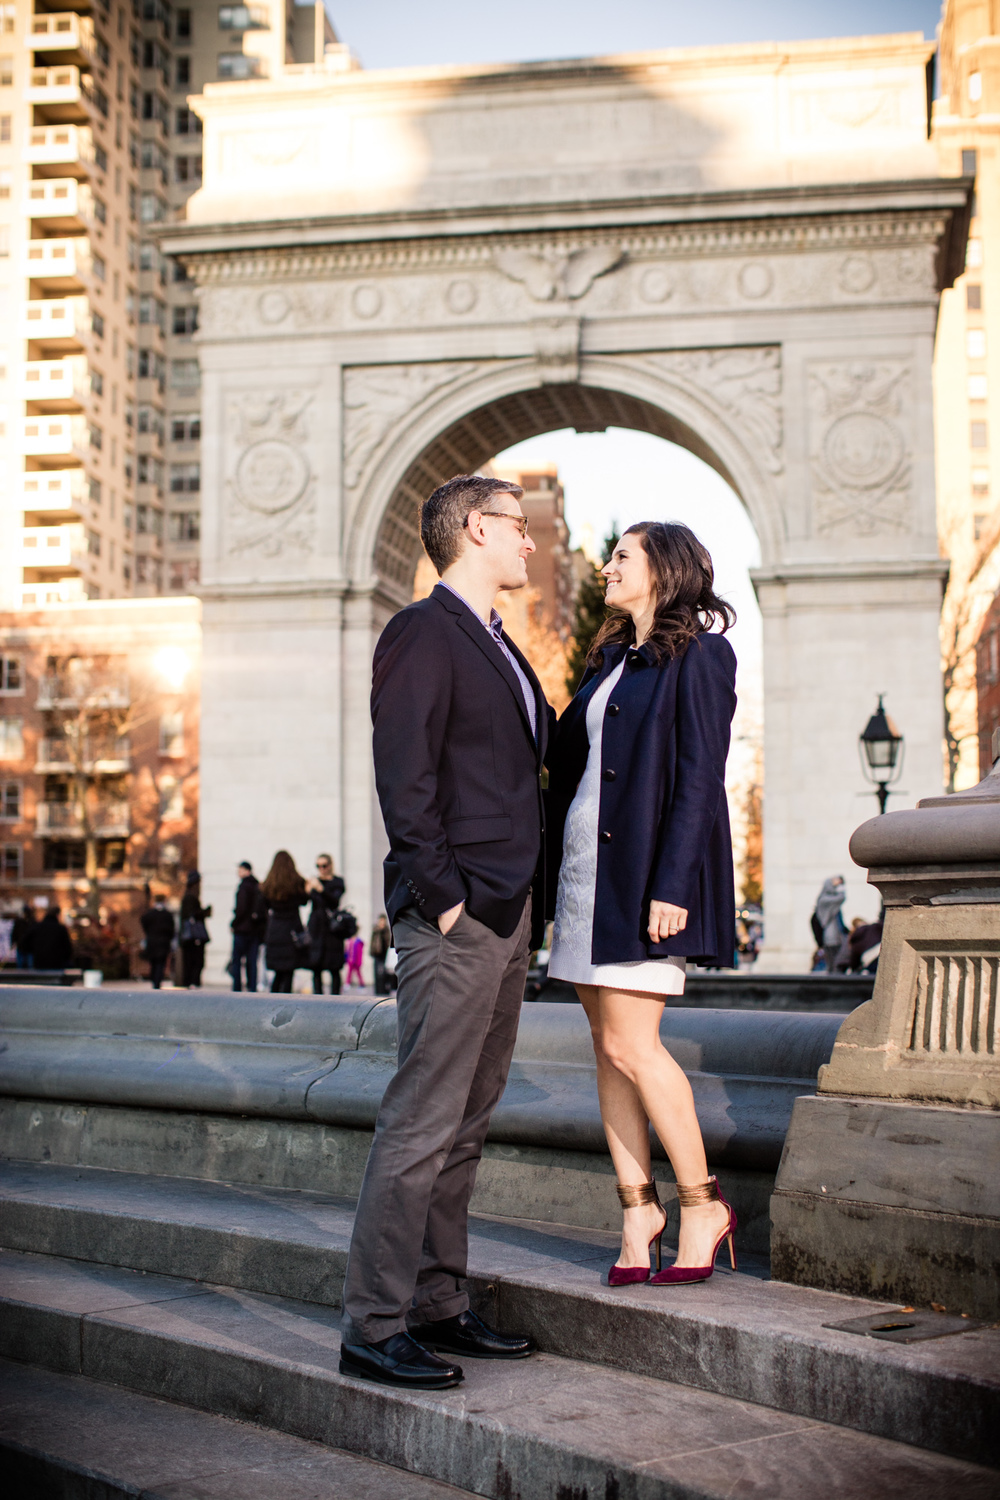 Alex & Nicole, Washington Square Park, New York City